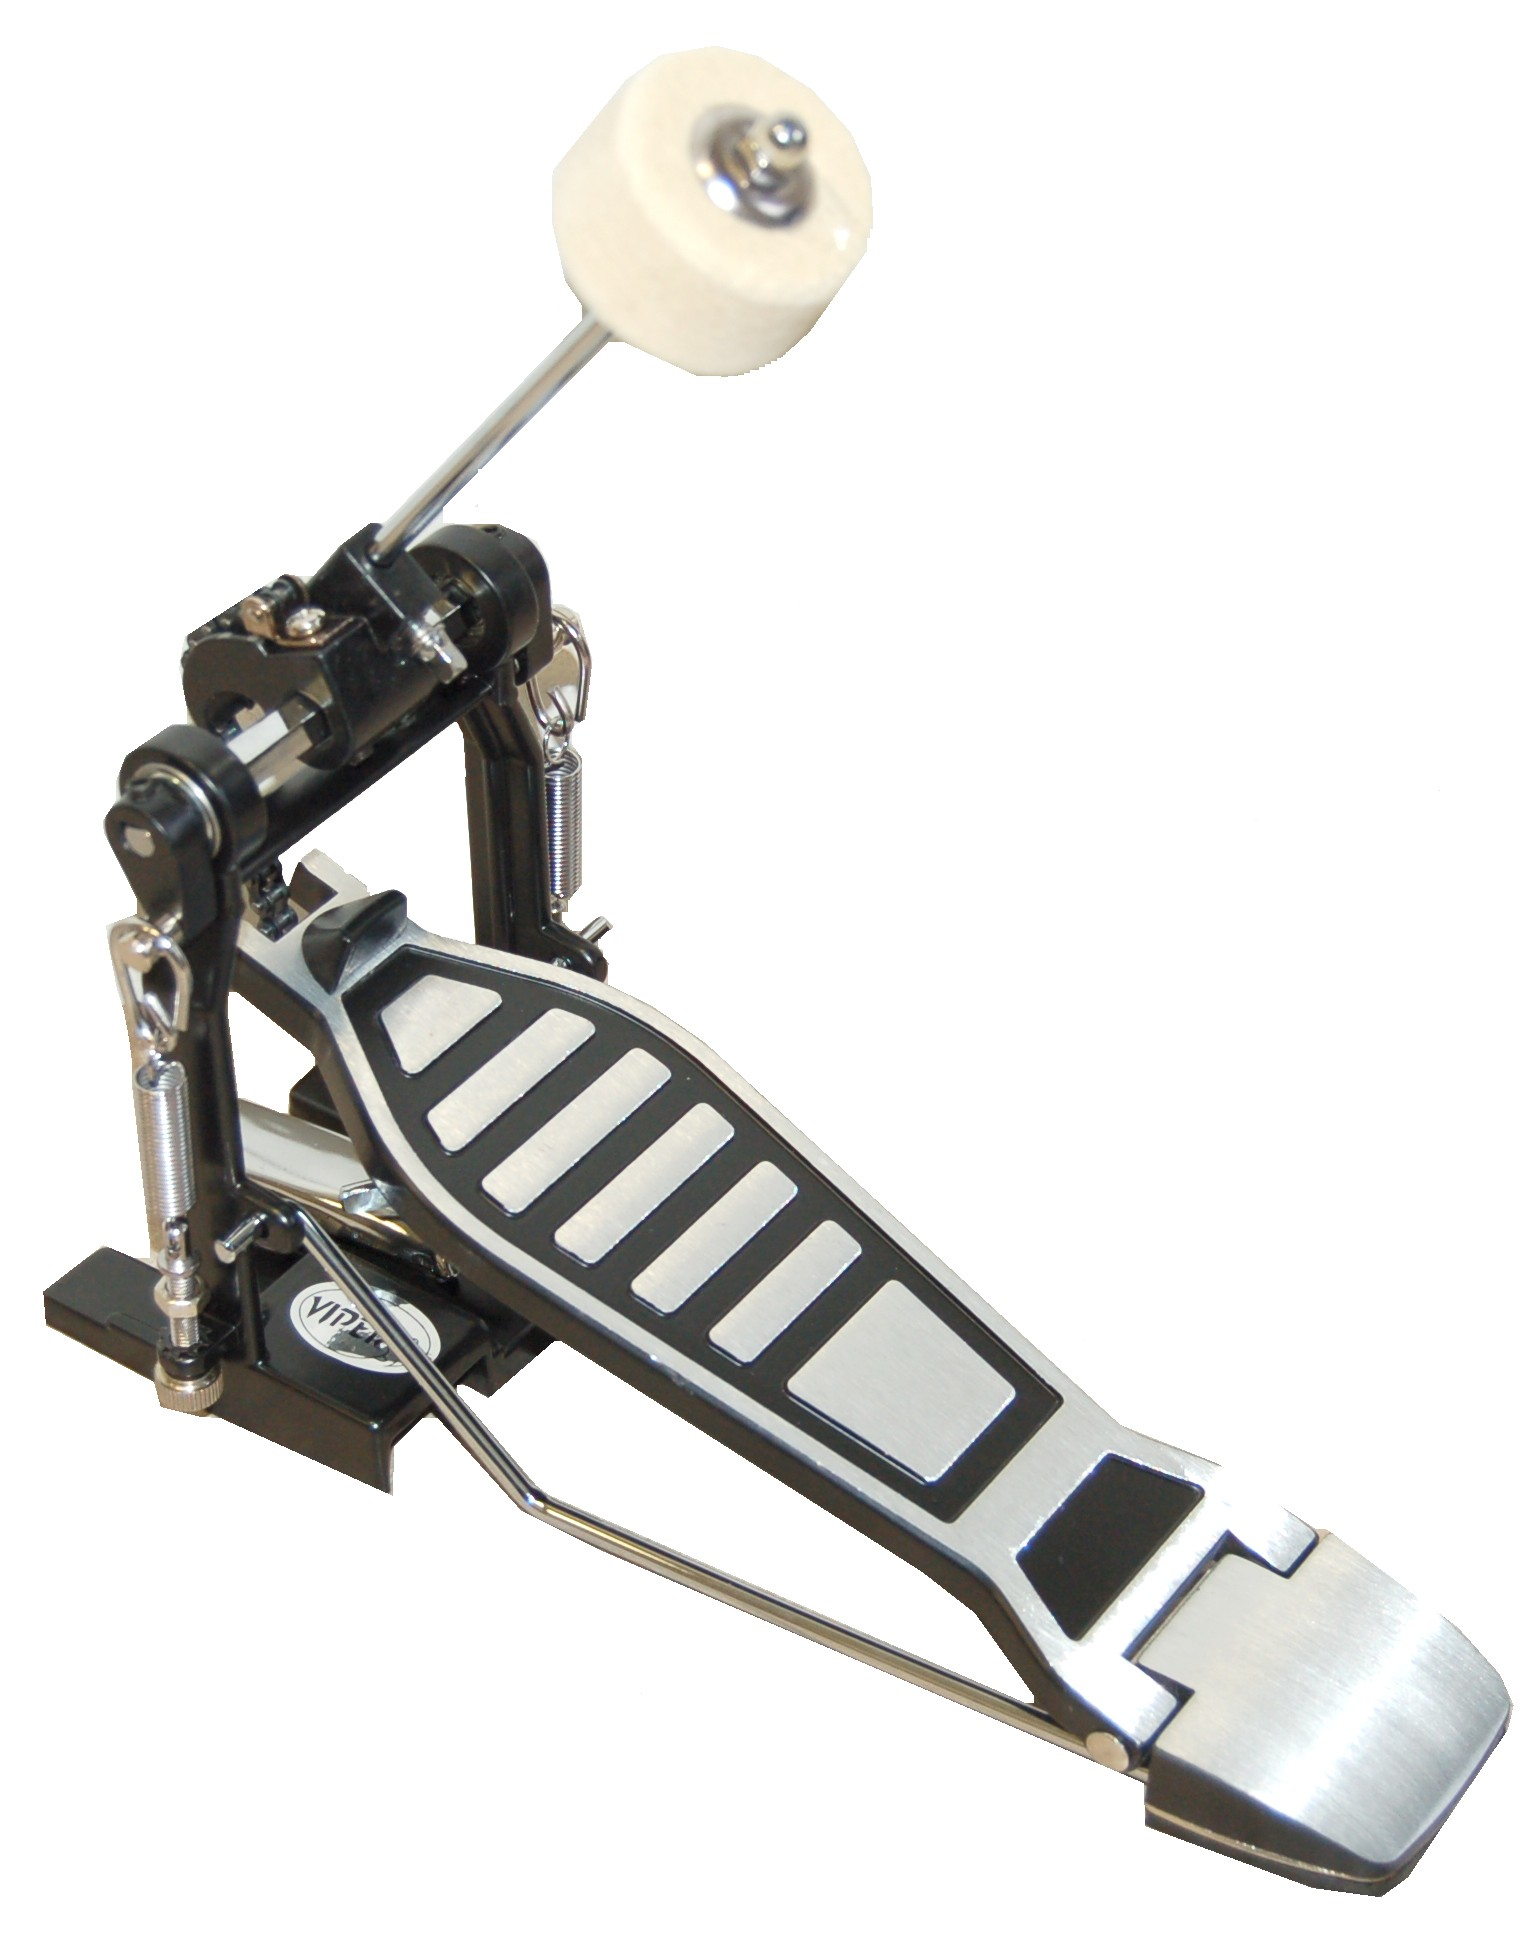 VIPER P100 SINGLE BASS DRUM PEDAL